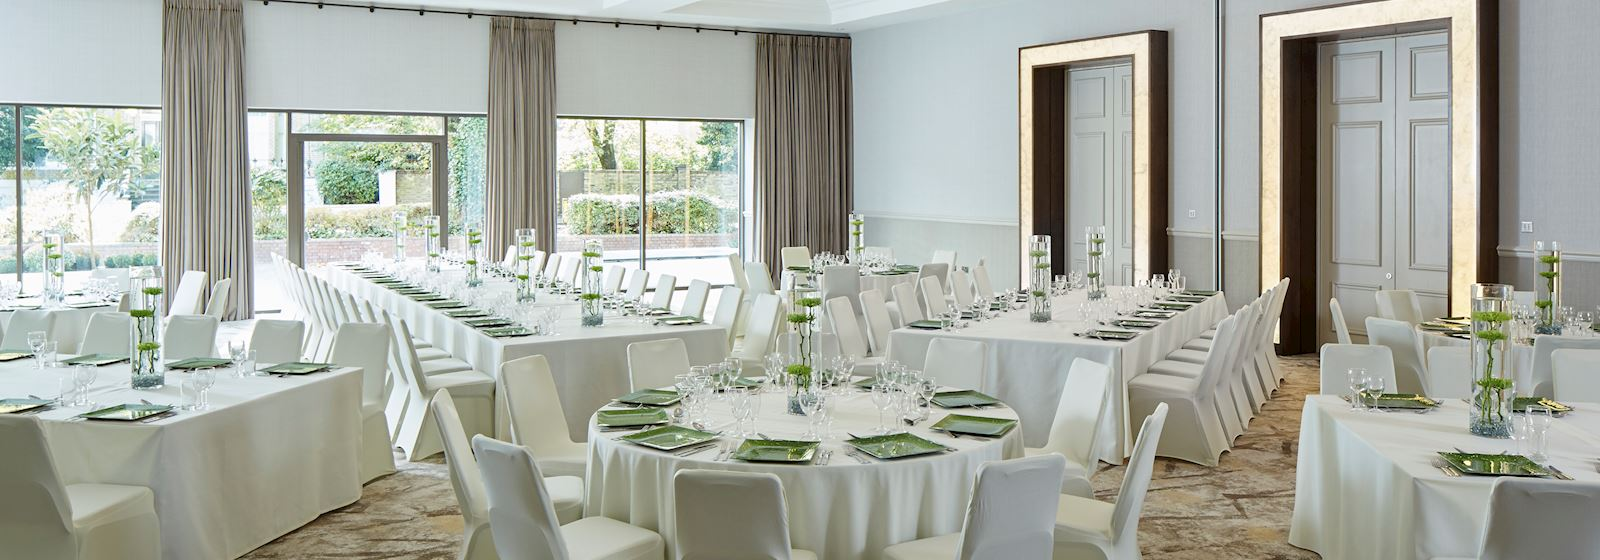 London Marriott Hotel Regents Park Weddings